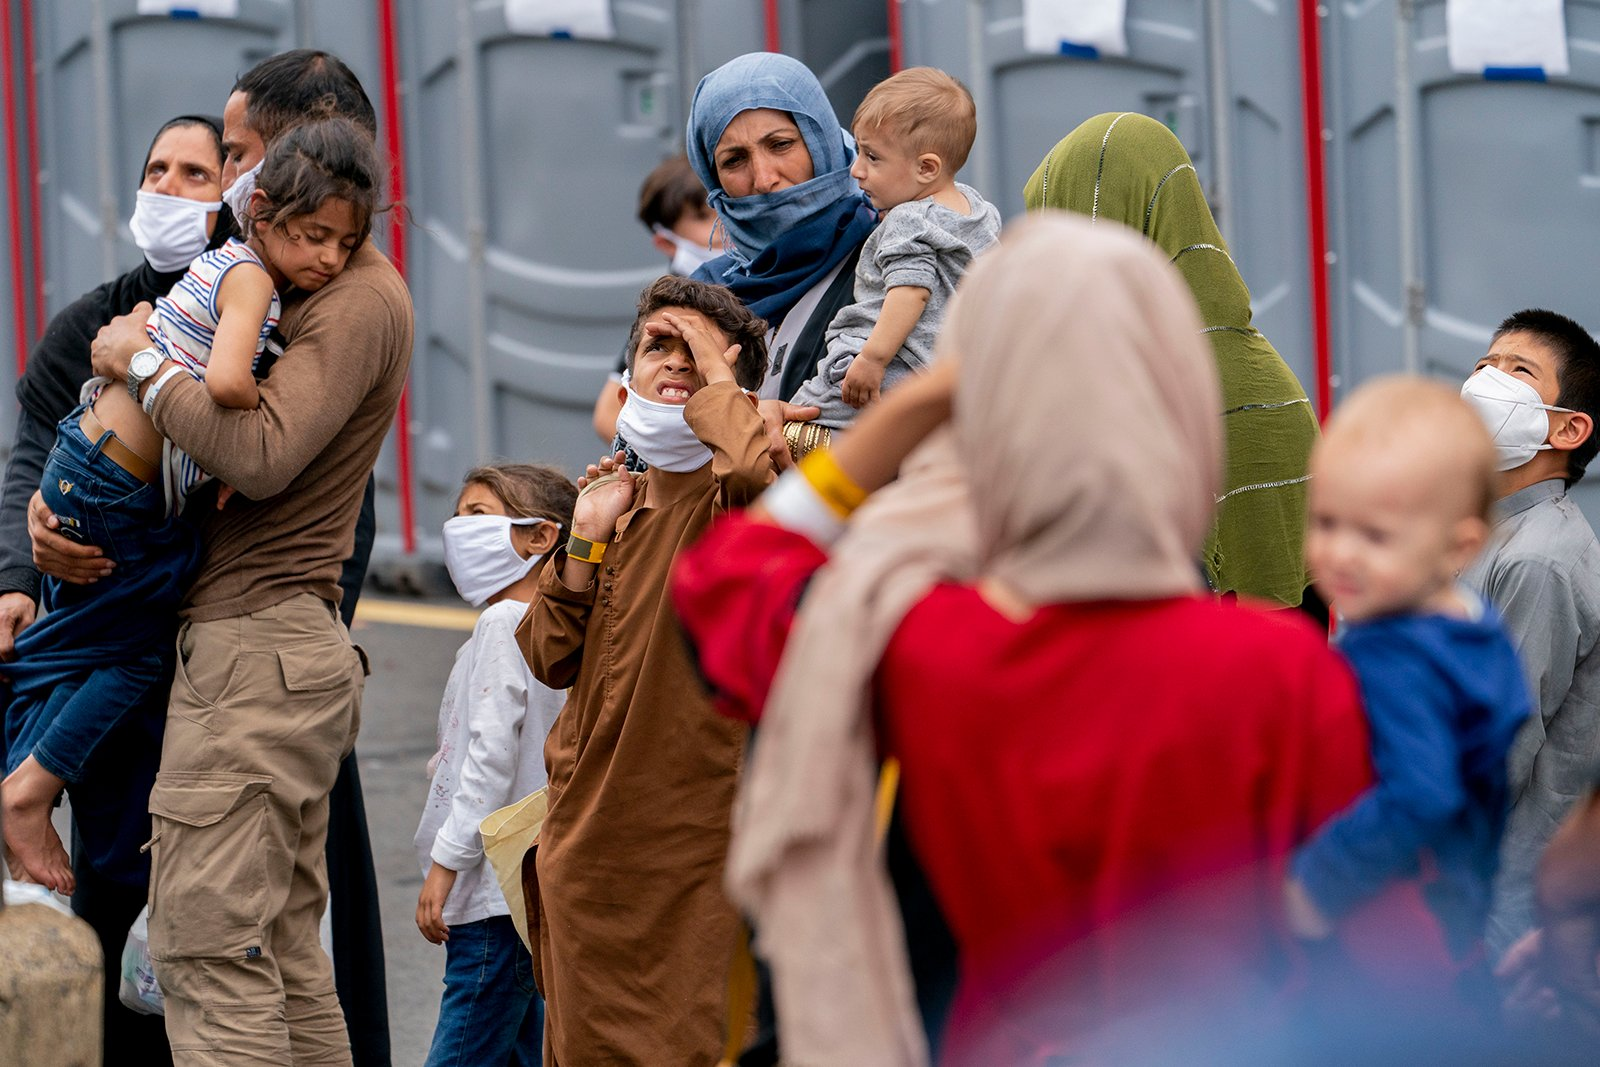 People evacuated from Afghanistan step off a bus as they arrive at a processing center in Chantilly, Virginia, on Aug. 23, 2021, after arriving on a flight at Dulles International Airport. (AP Photo/Andrew Harnik)